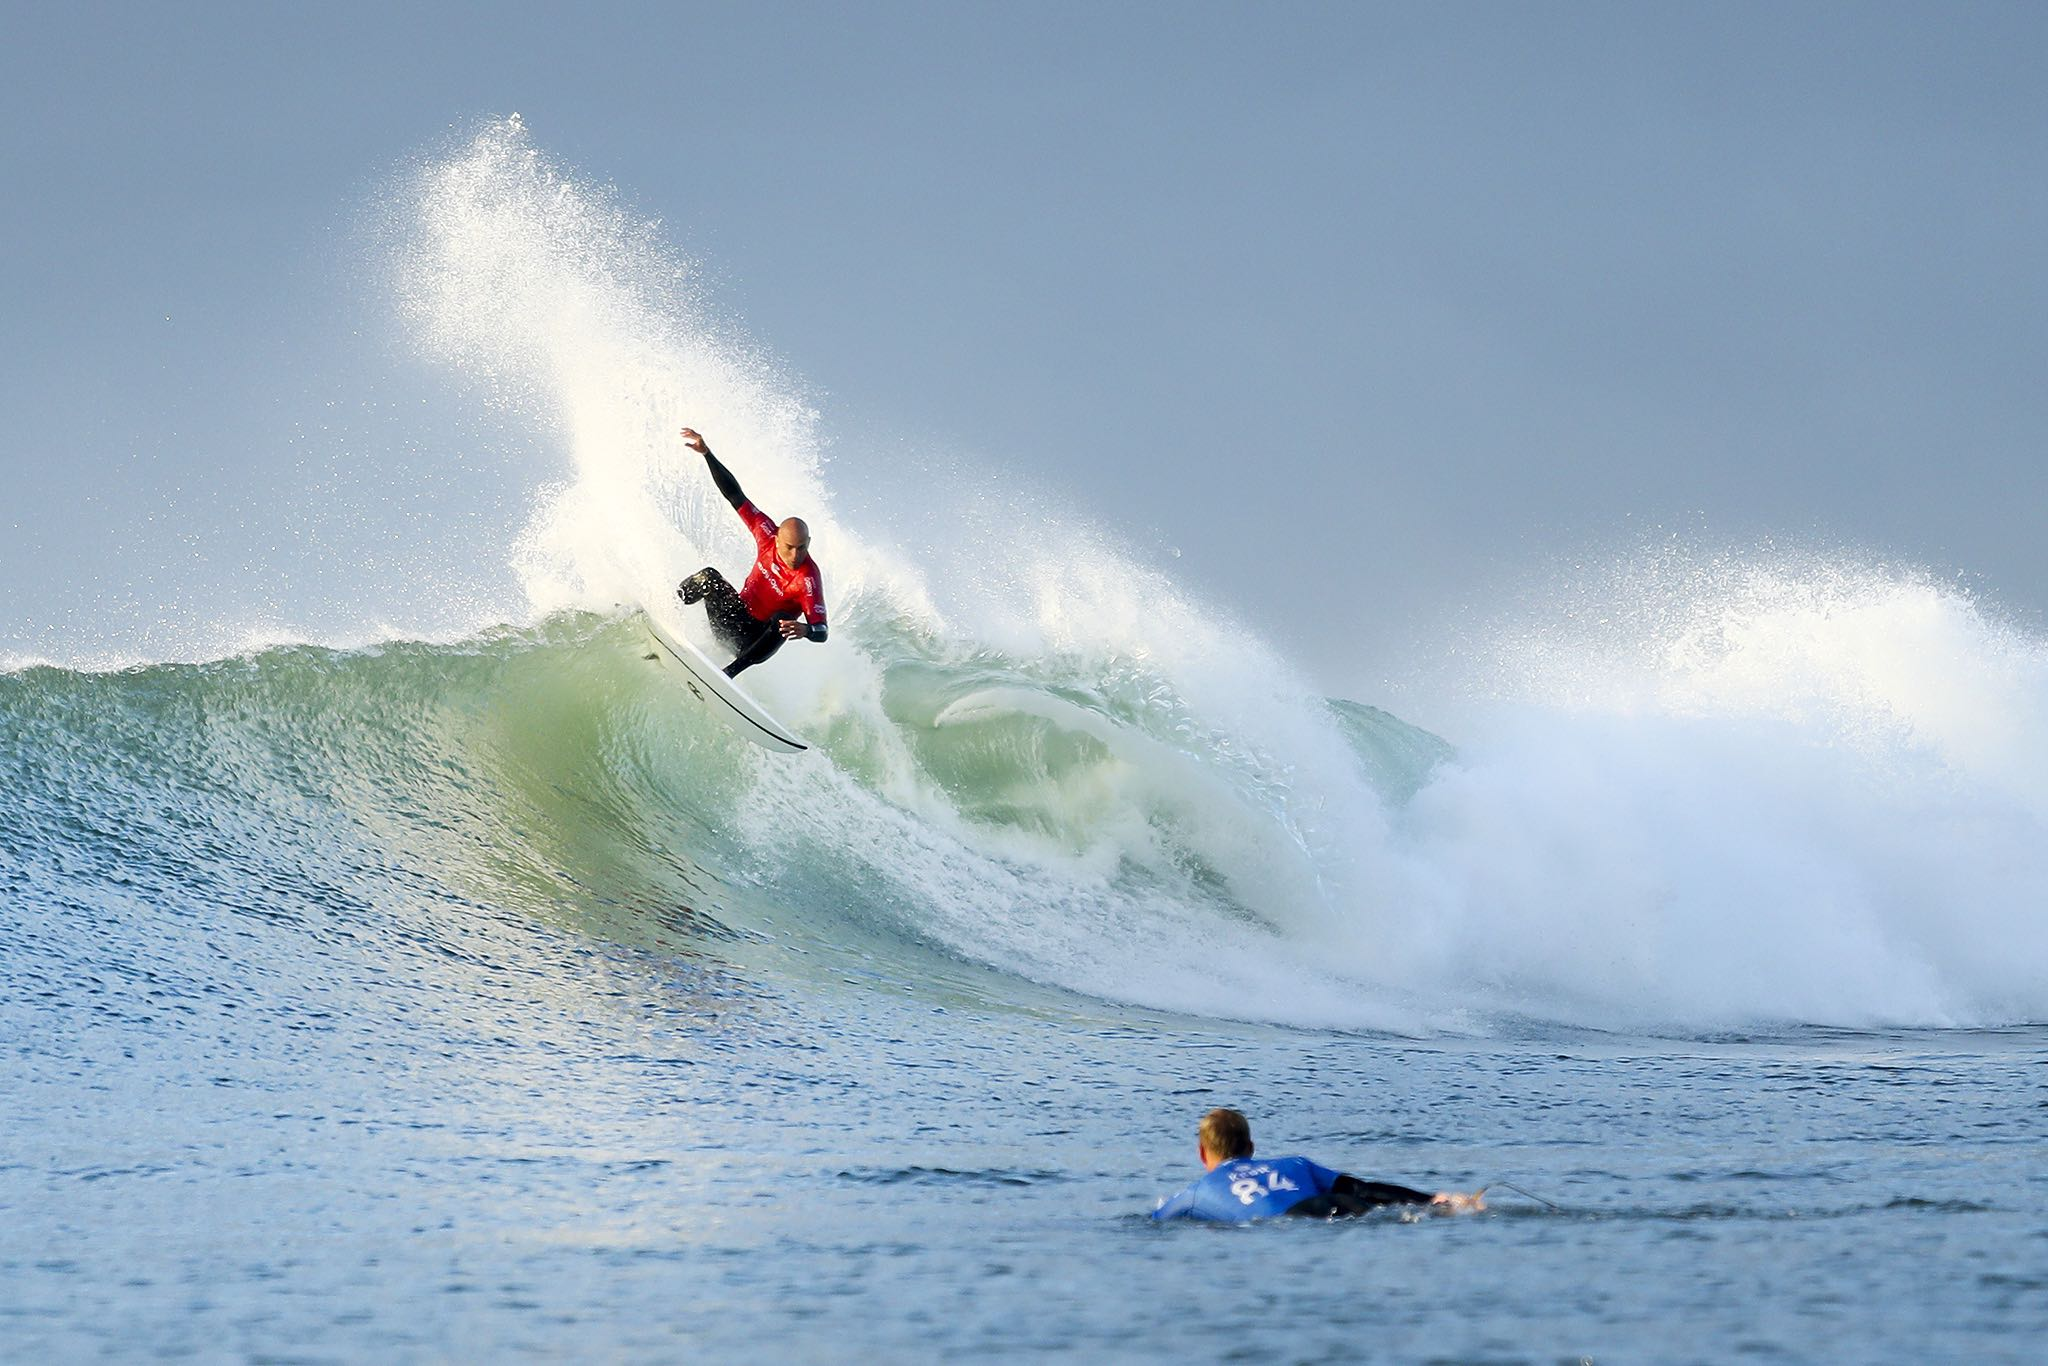 Kelly Slater competing in the 2016 J-Bay Open of Surfing